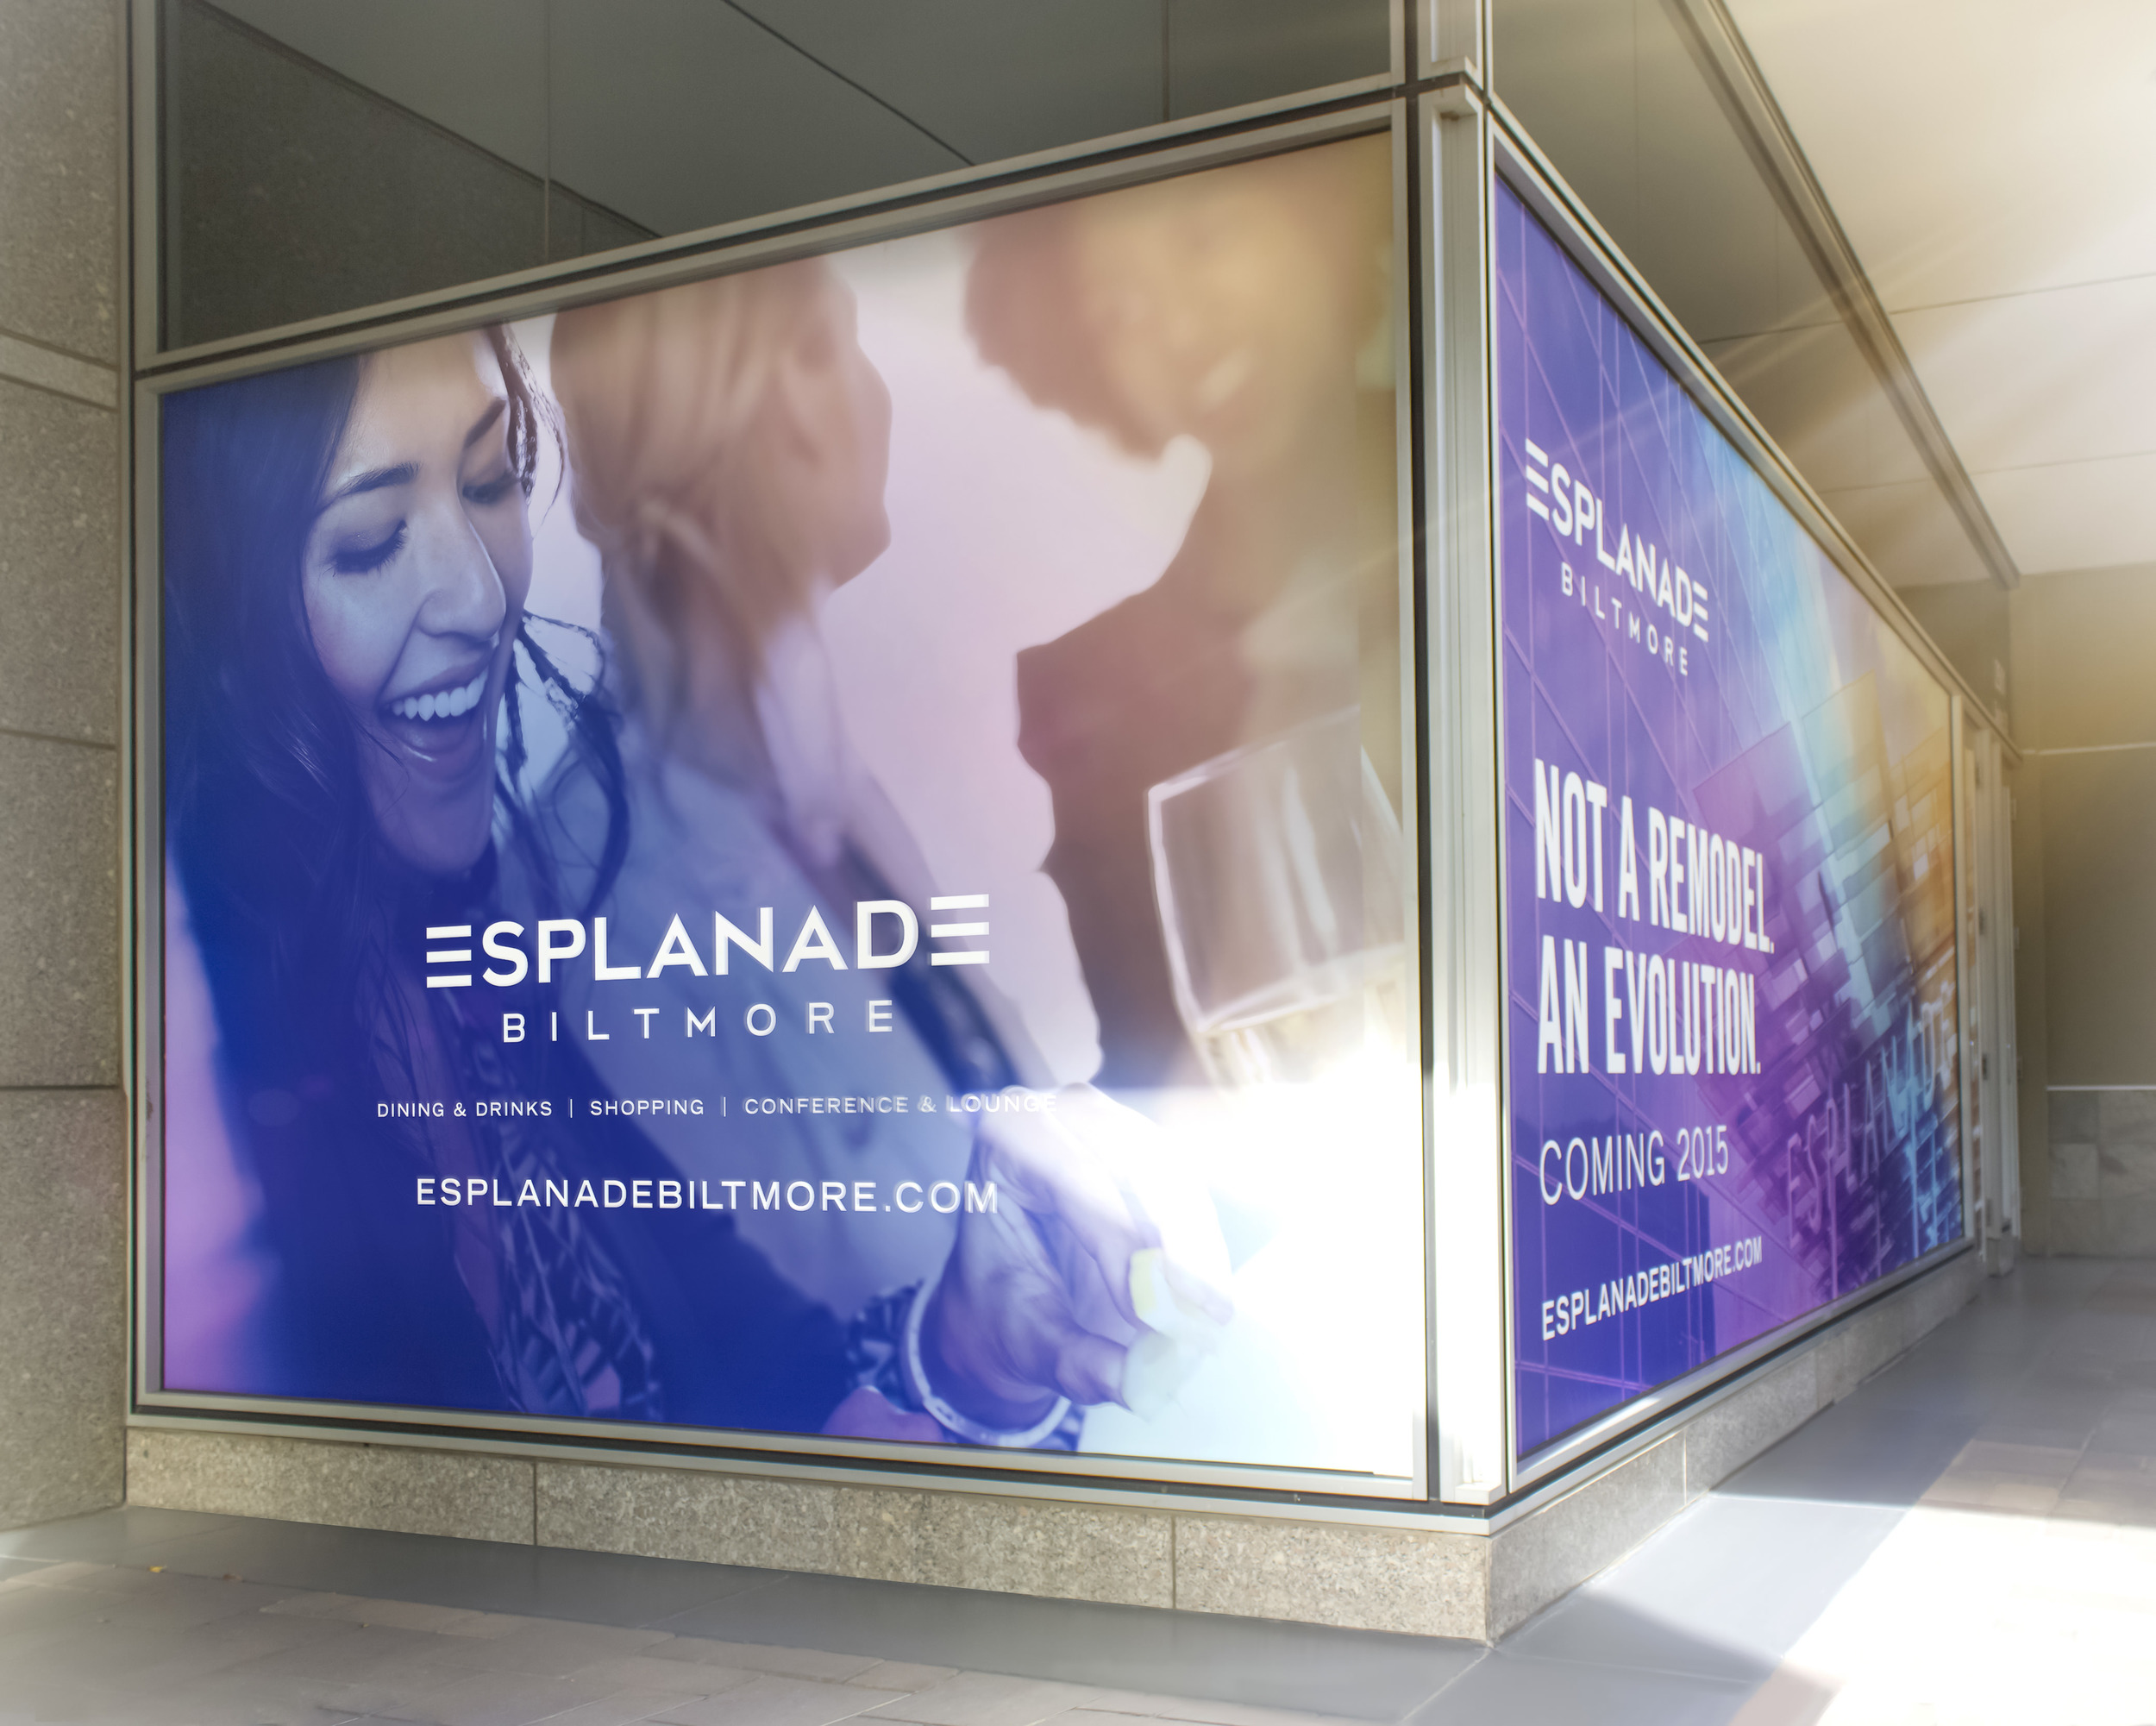 Storefront windows are decorated with the updated Esplanade branding message.